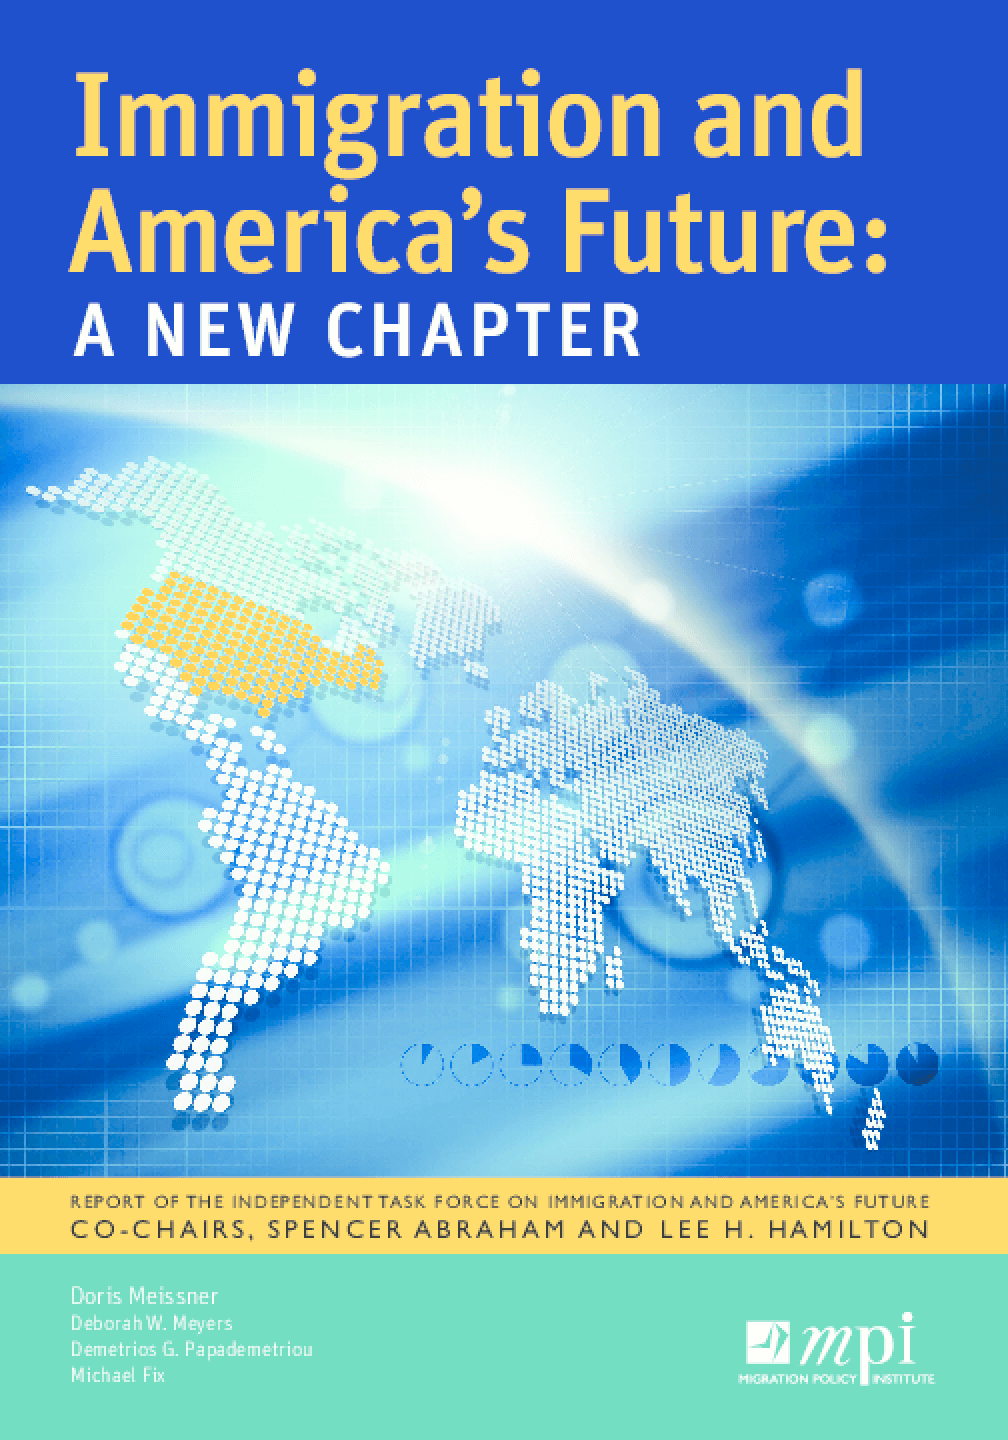 Immigration and America's Future: A New Chapter